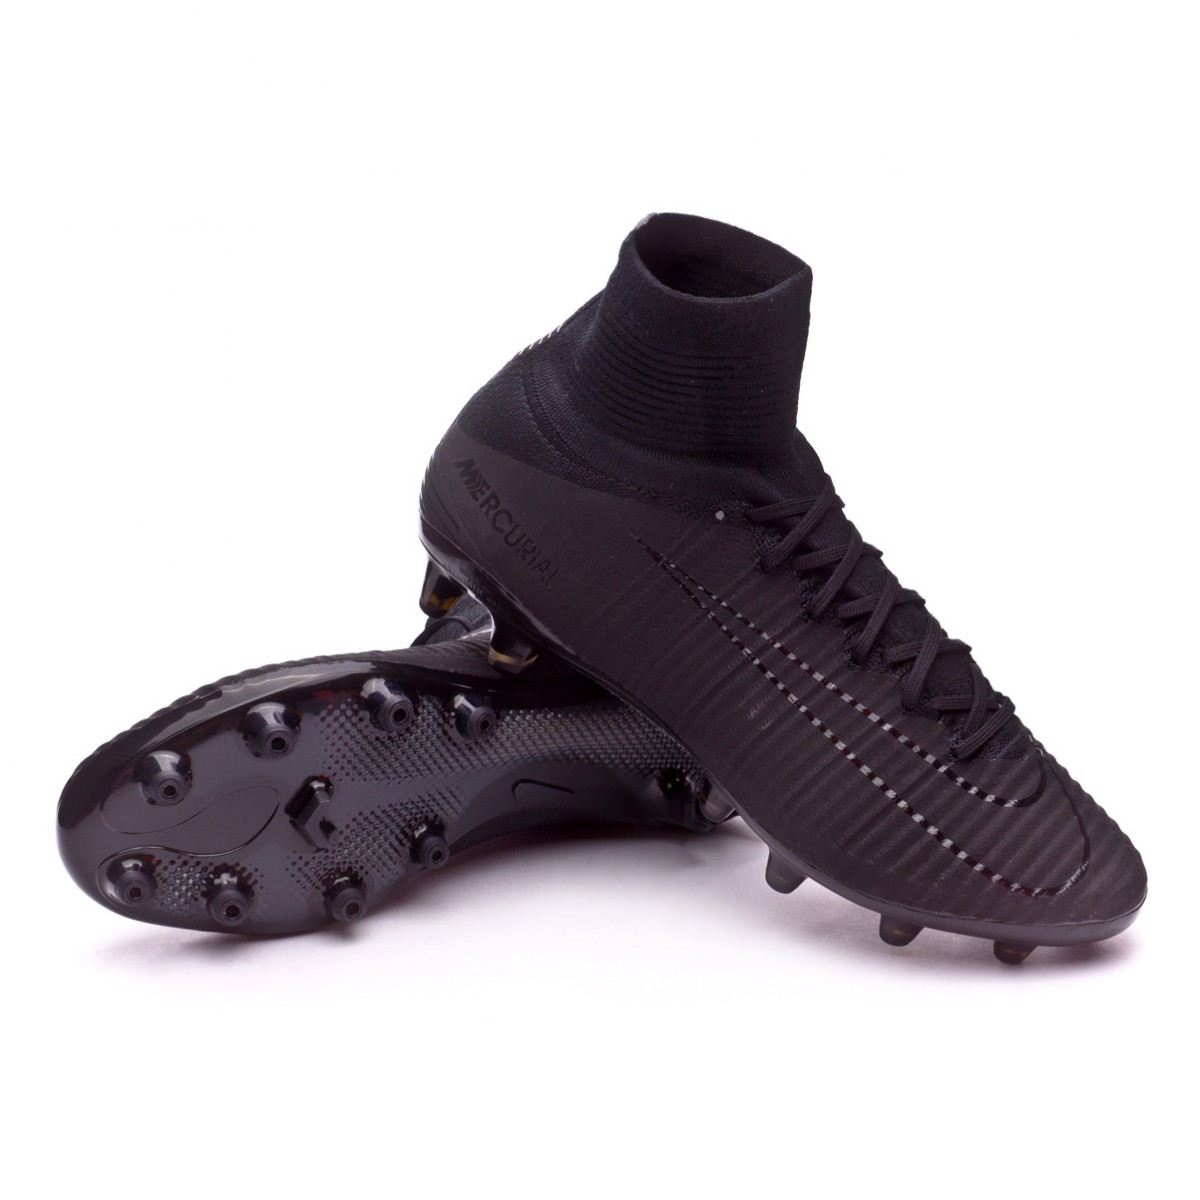 new style c57ff 22a97 Nike Mercurial Superfly V AG-Pro Football Boots